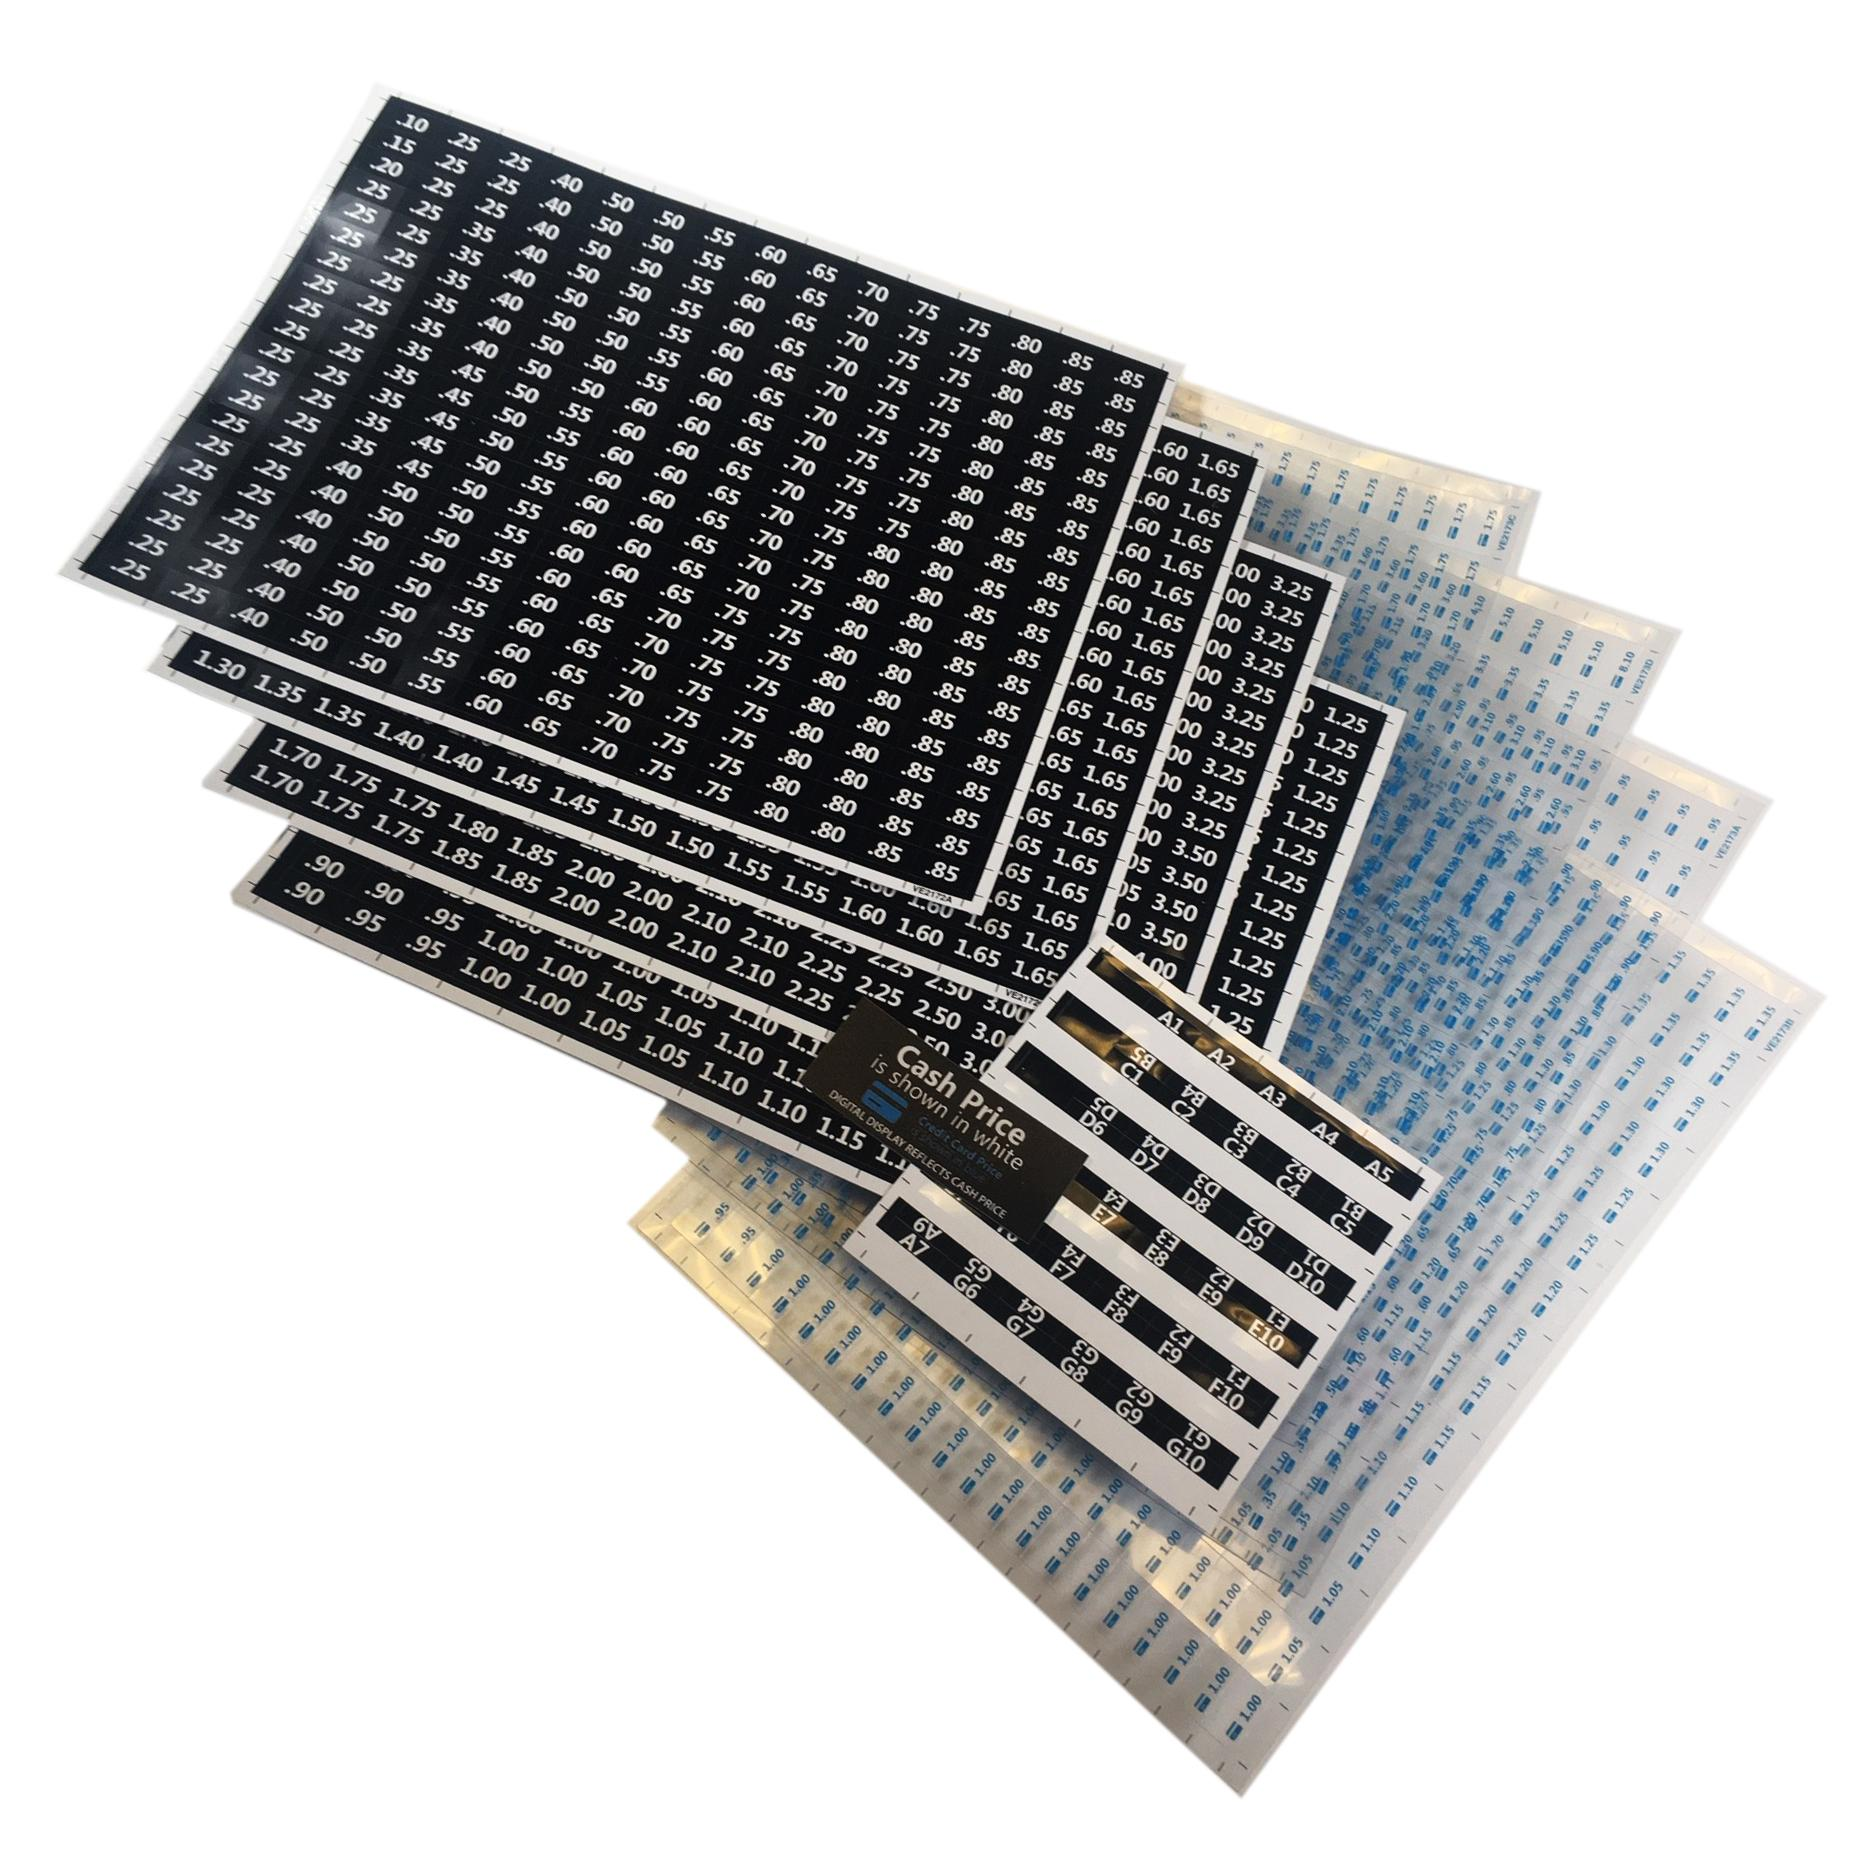 TWO TIER PRICING KIT, FOR AP 6000/7000/110/LCM SERIES